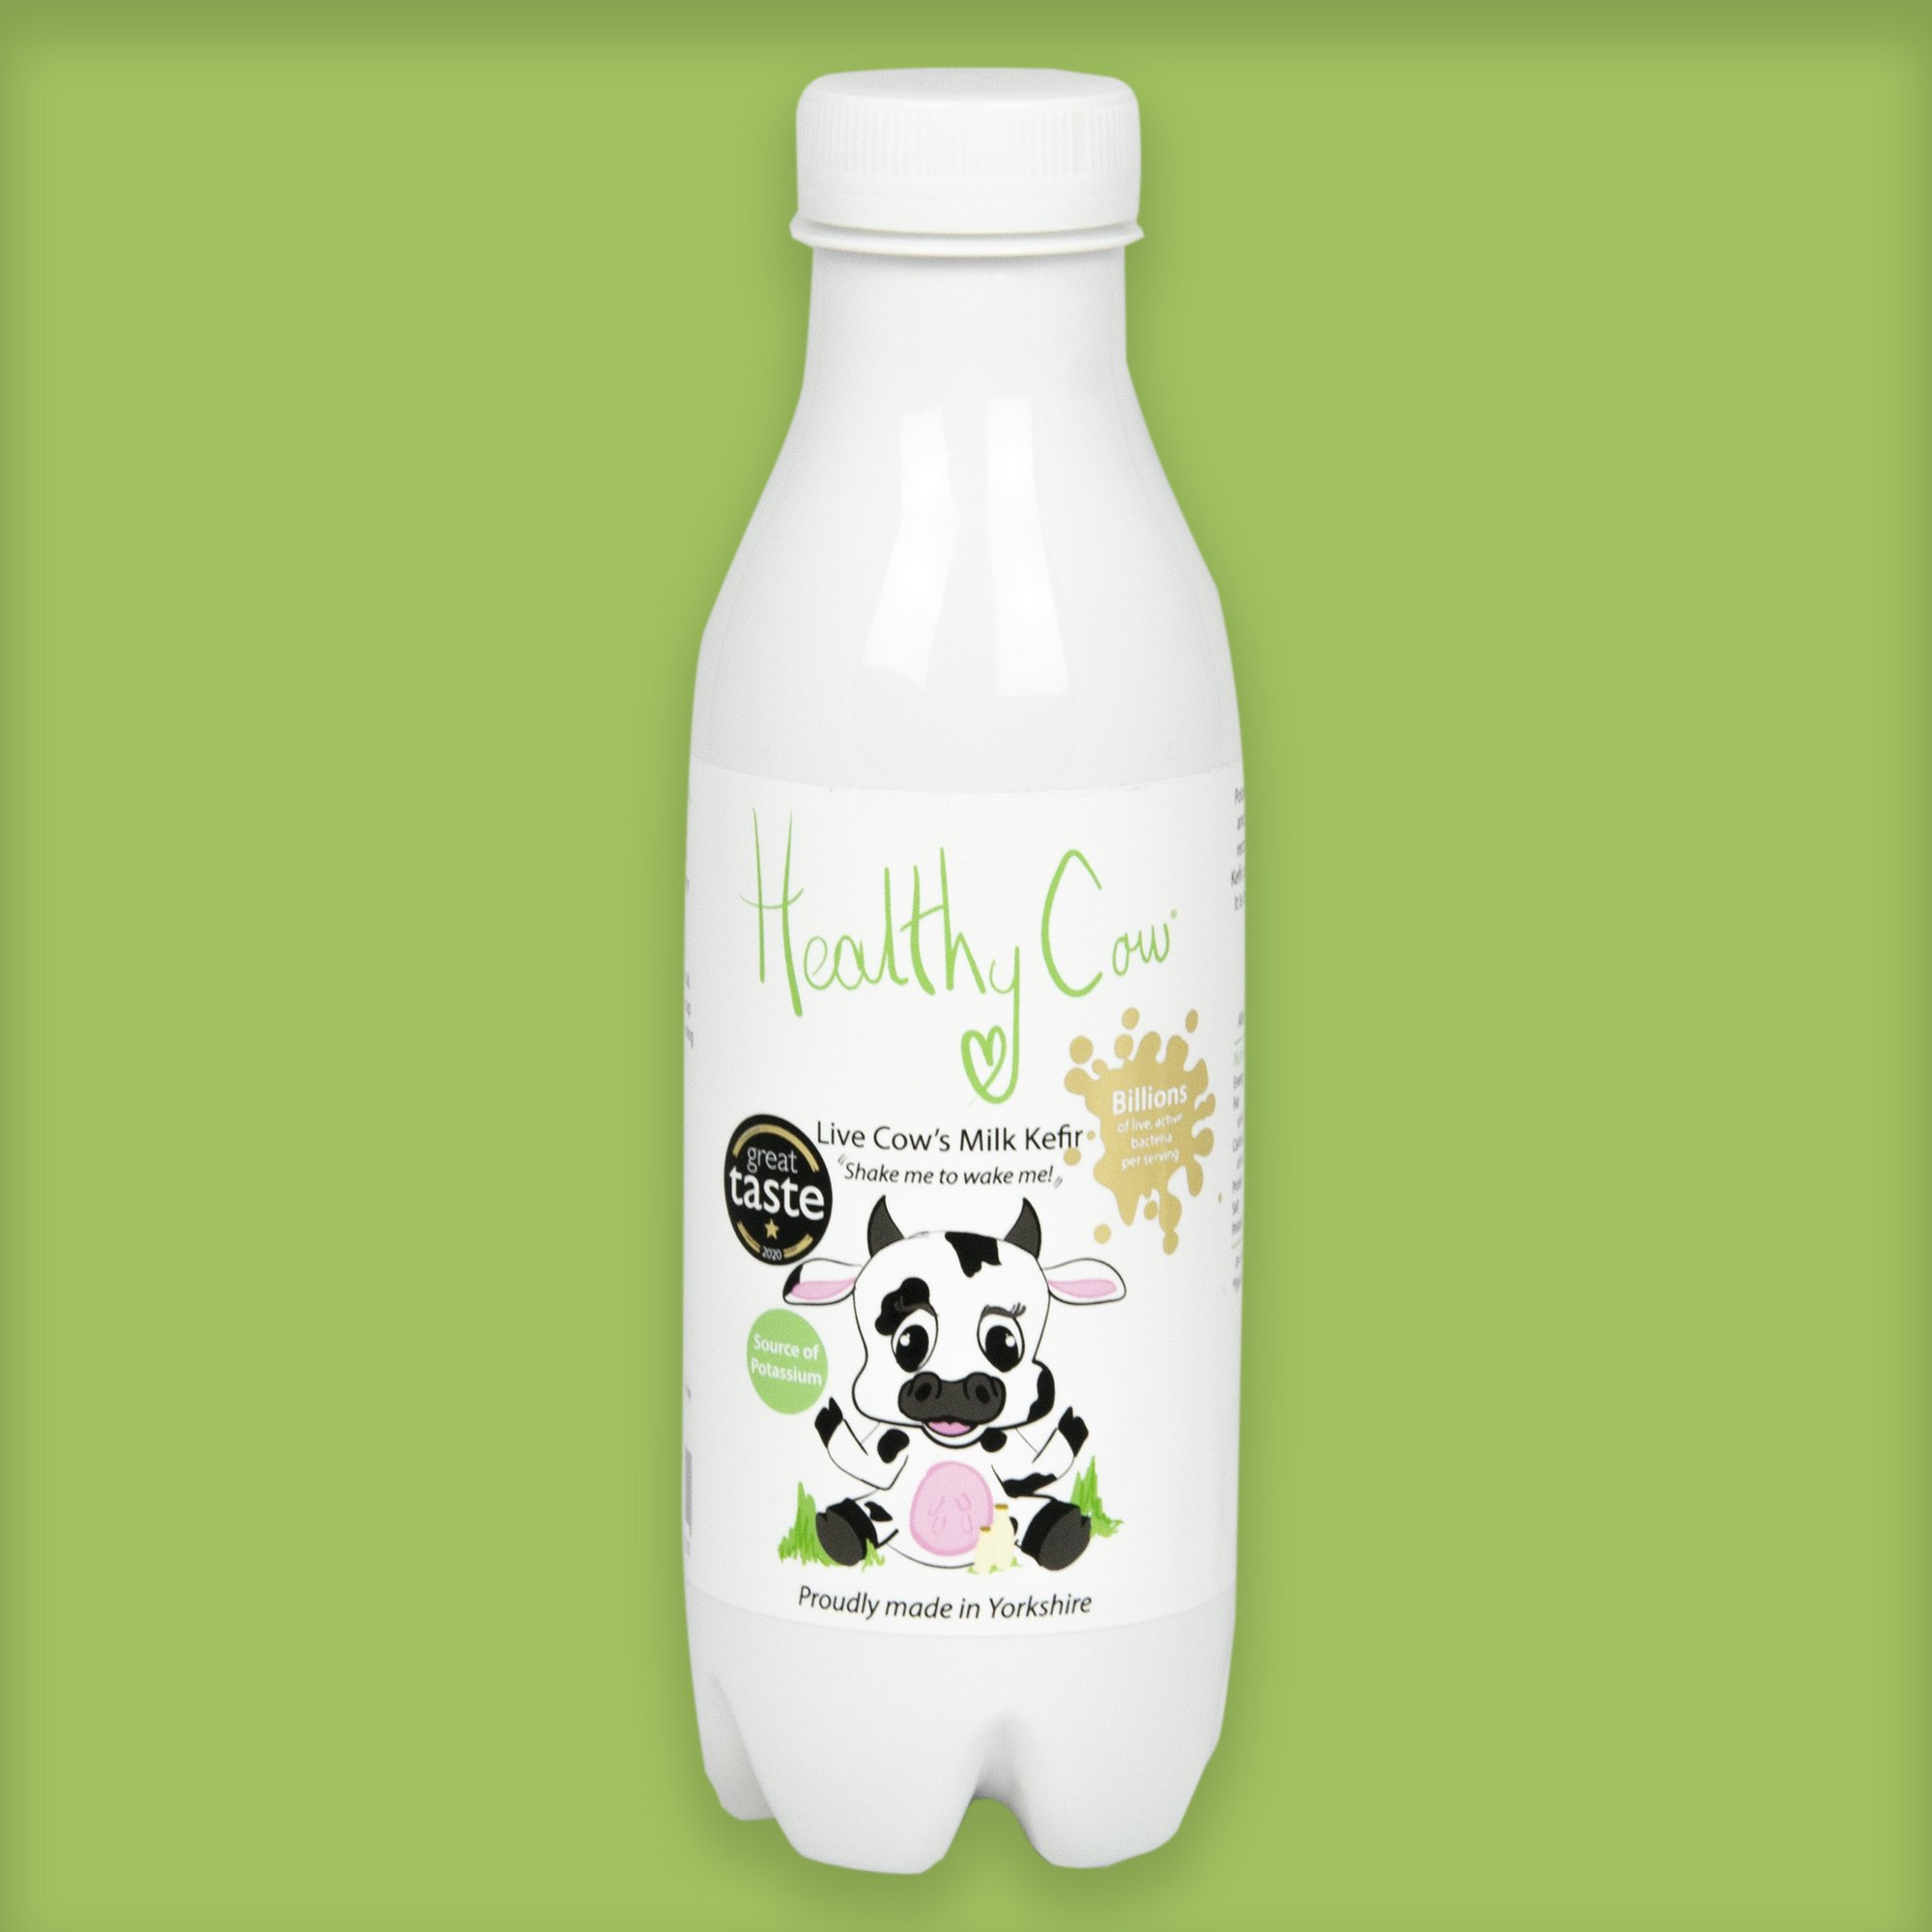 healthy-cow-2021_green